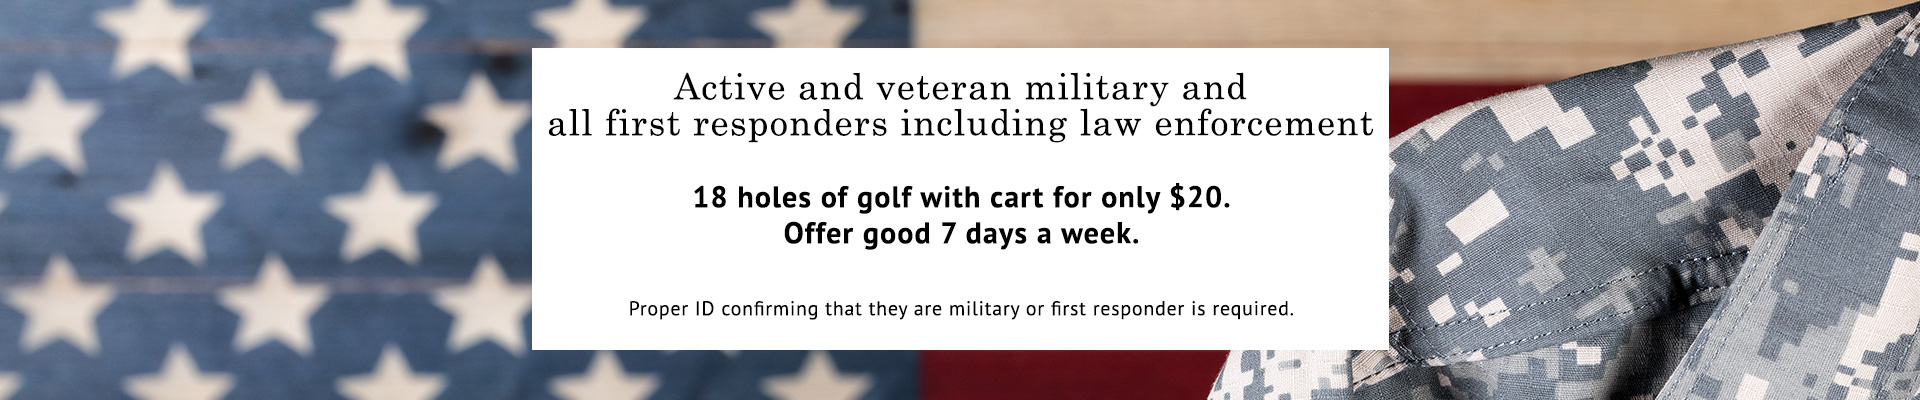 Active and veteran military and all first responders. 18 holes of golf $20